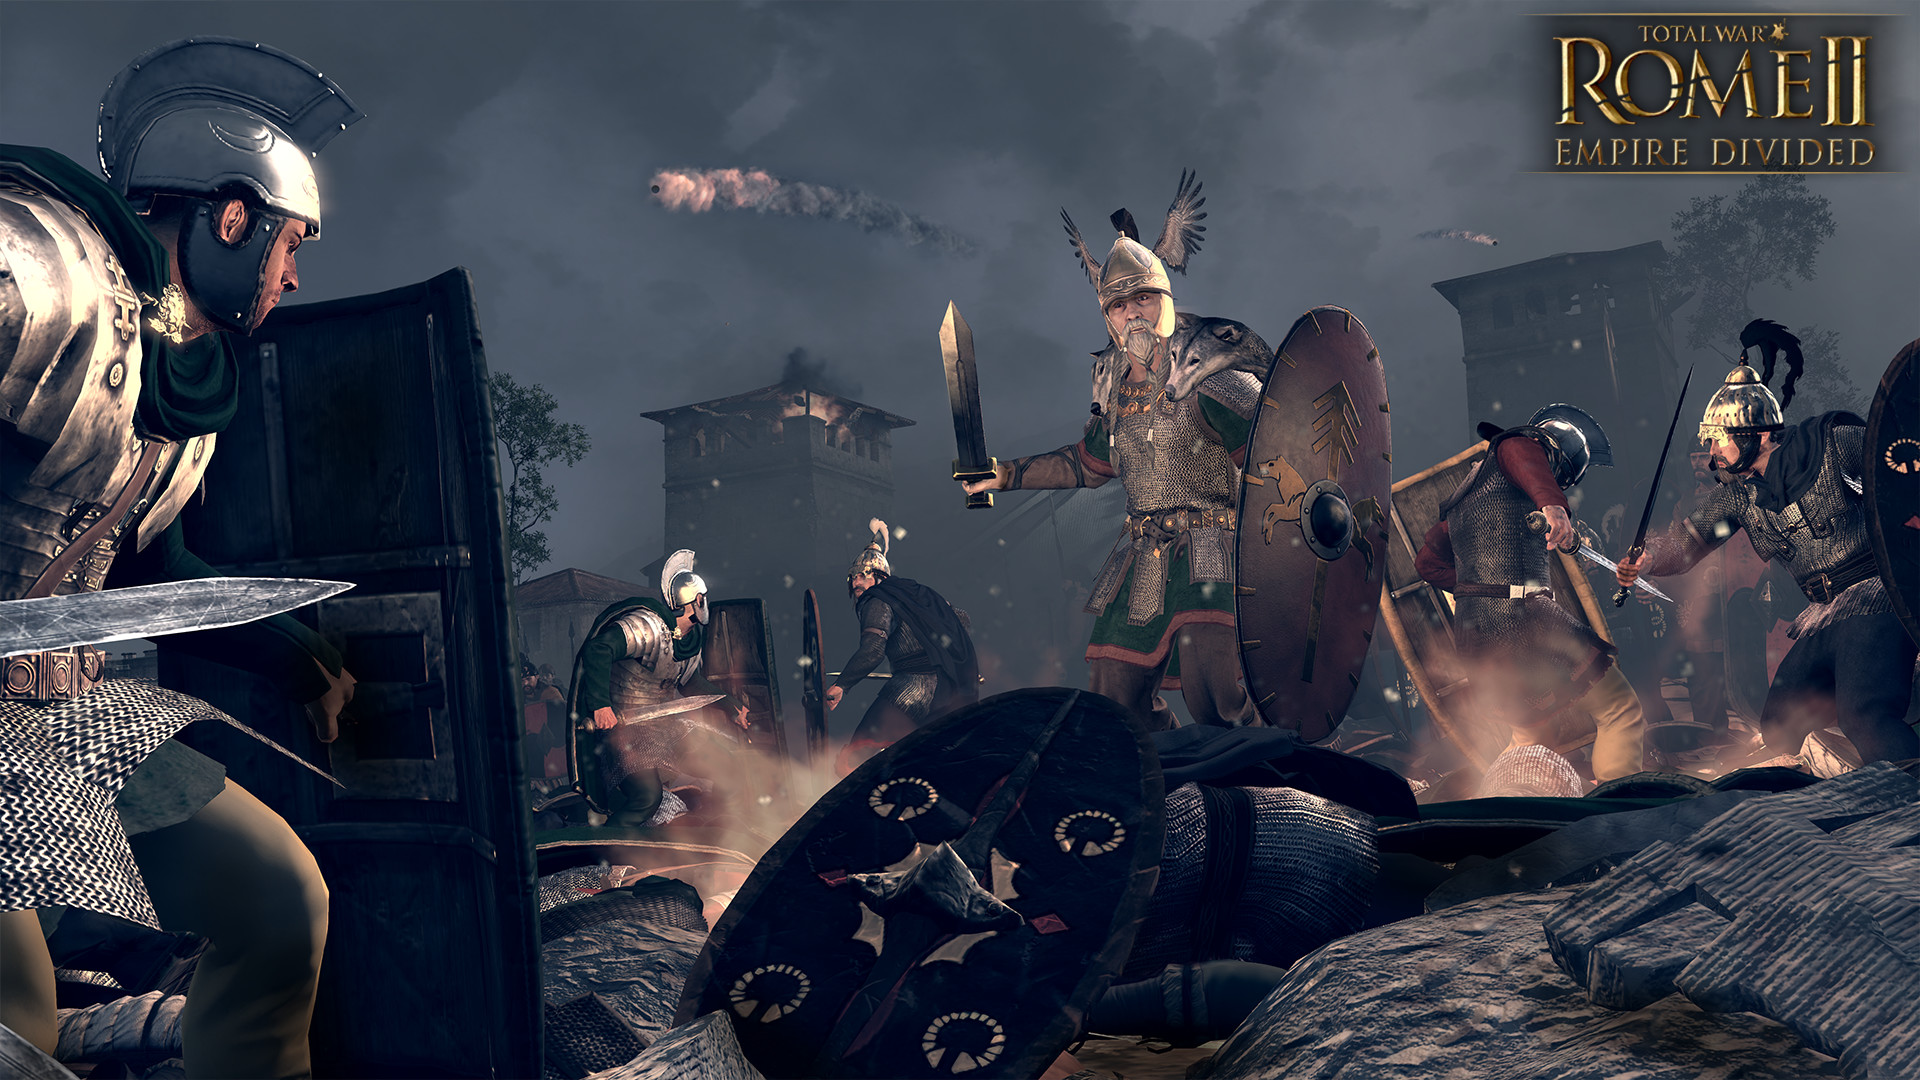 Total War Rome Ii Empire Divided Campaign Pack On Steam